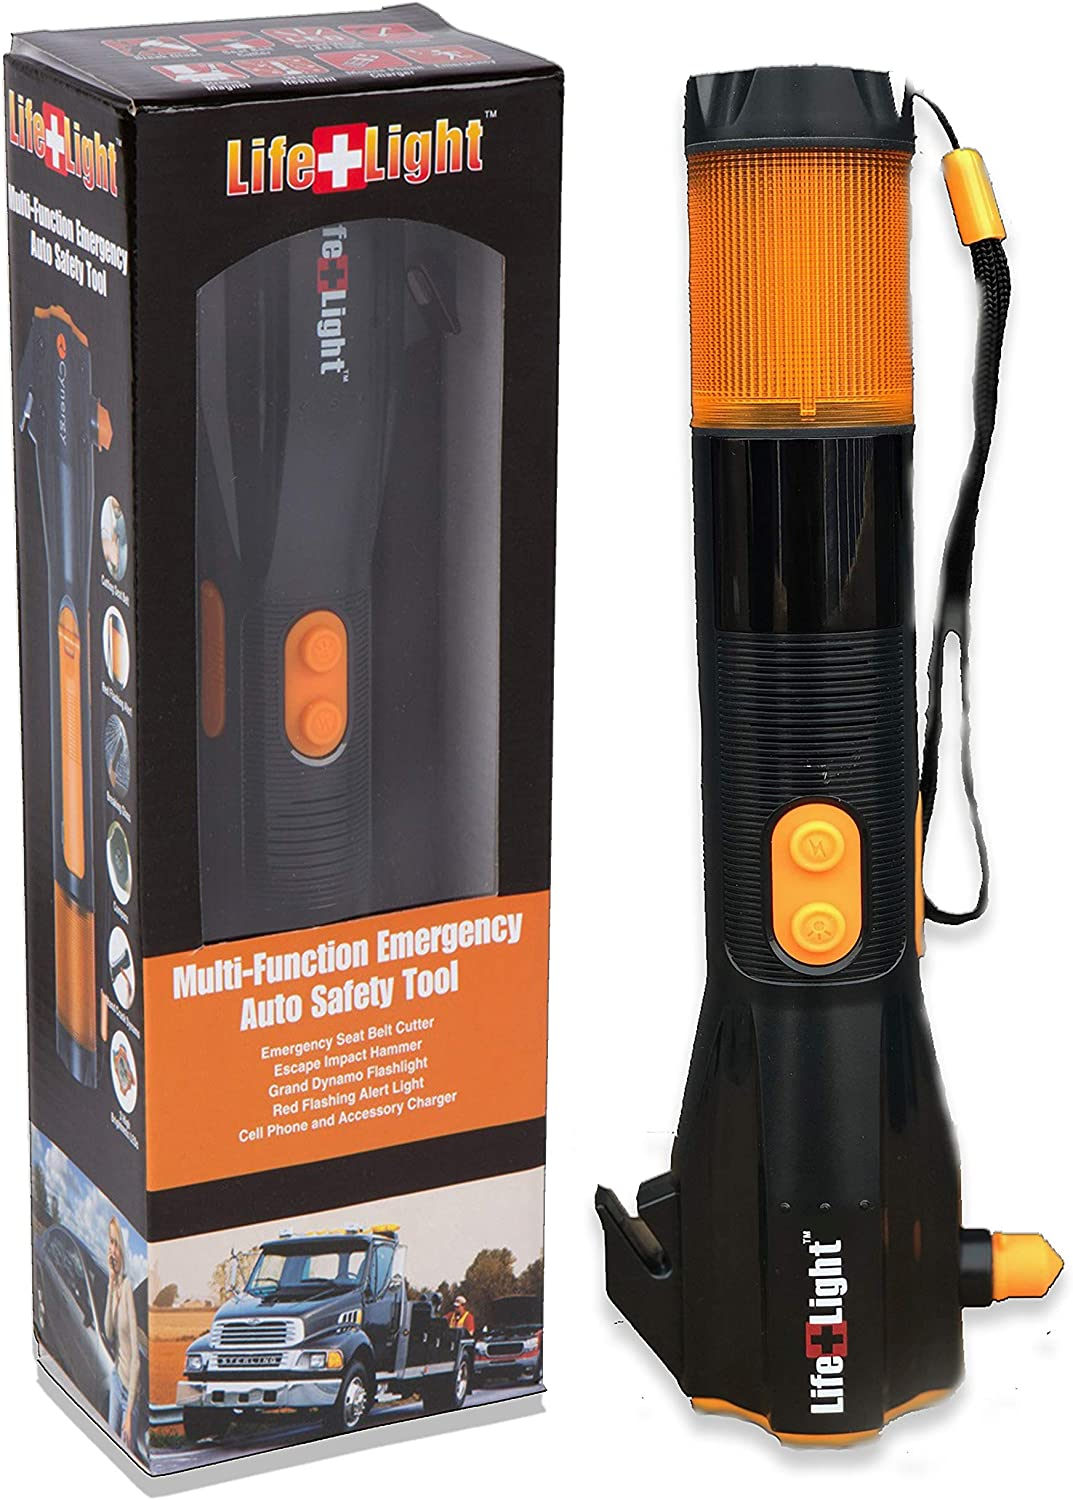 Image of a Cynergy flashlight in yellow-orange colors, with box and lanyard.